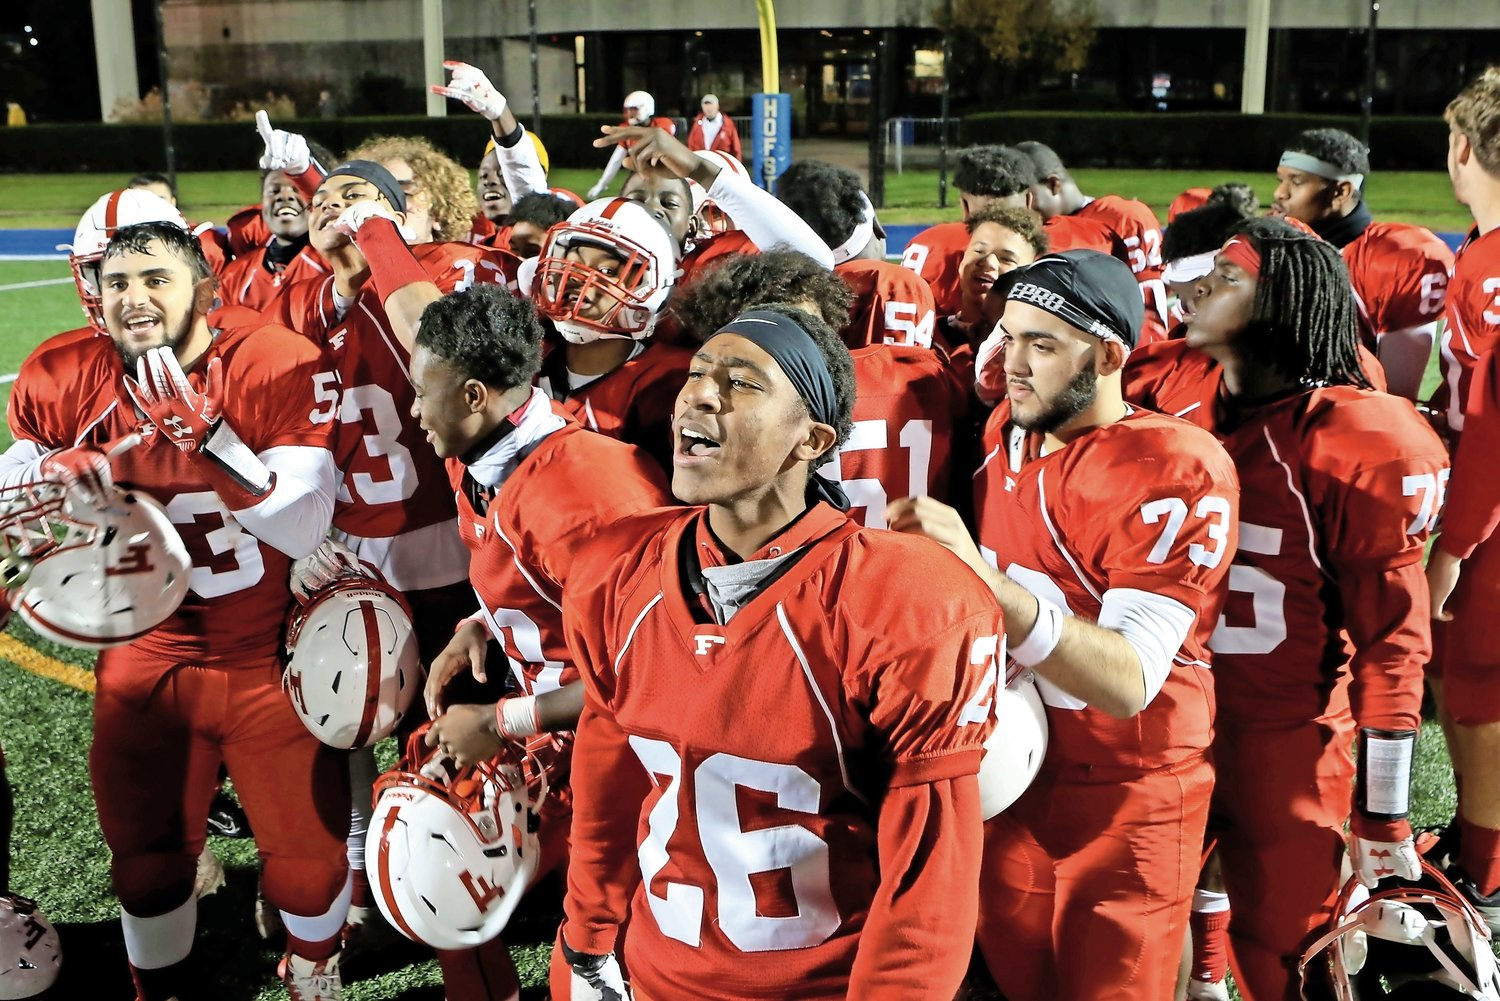 Freeport celebrated its second straight Nassau Conference I football championship after defeating Farmingdale, 30-7, in the title game at Hofstra on Nov. 21.